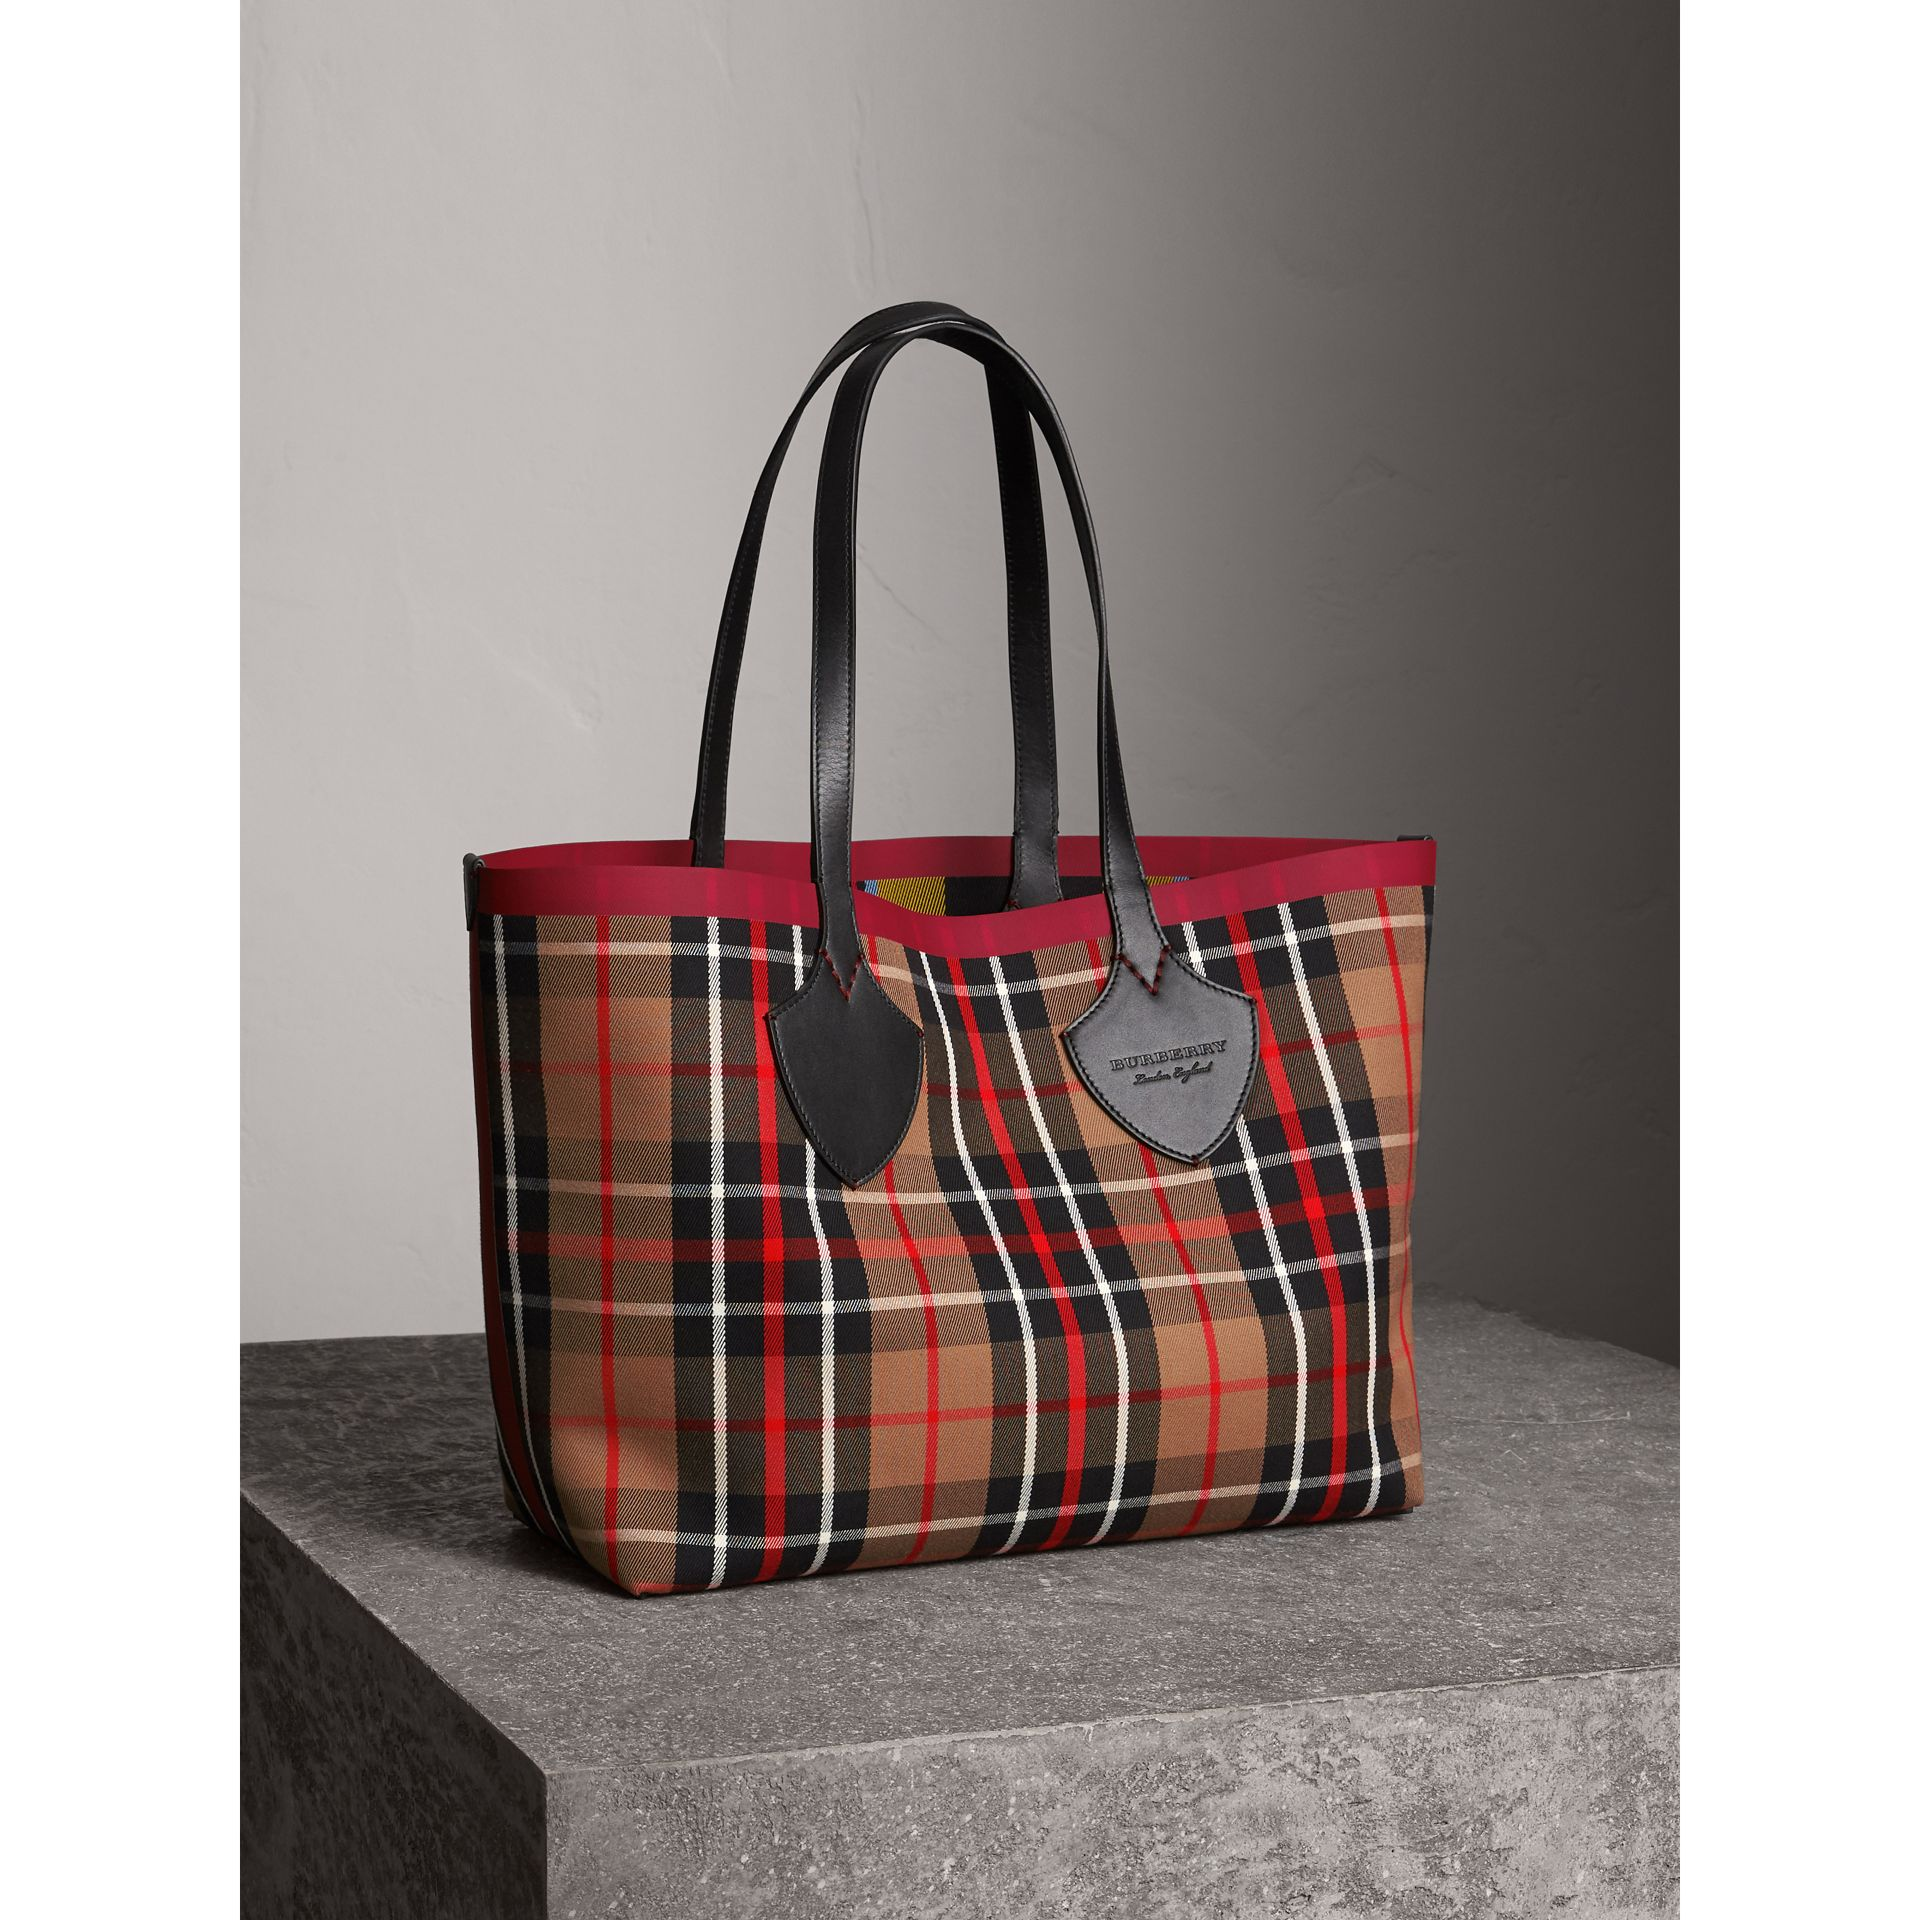 Borsa tote The Giant media double face in cotone con motivo tartan (Caramello/giallo Lino) | Burberry - immagine della galleria 6